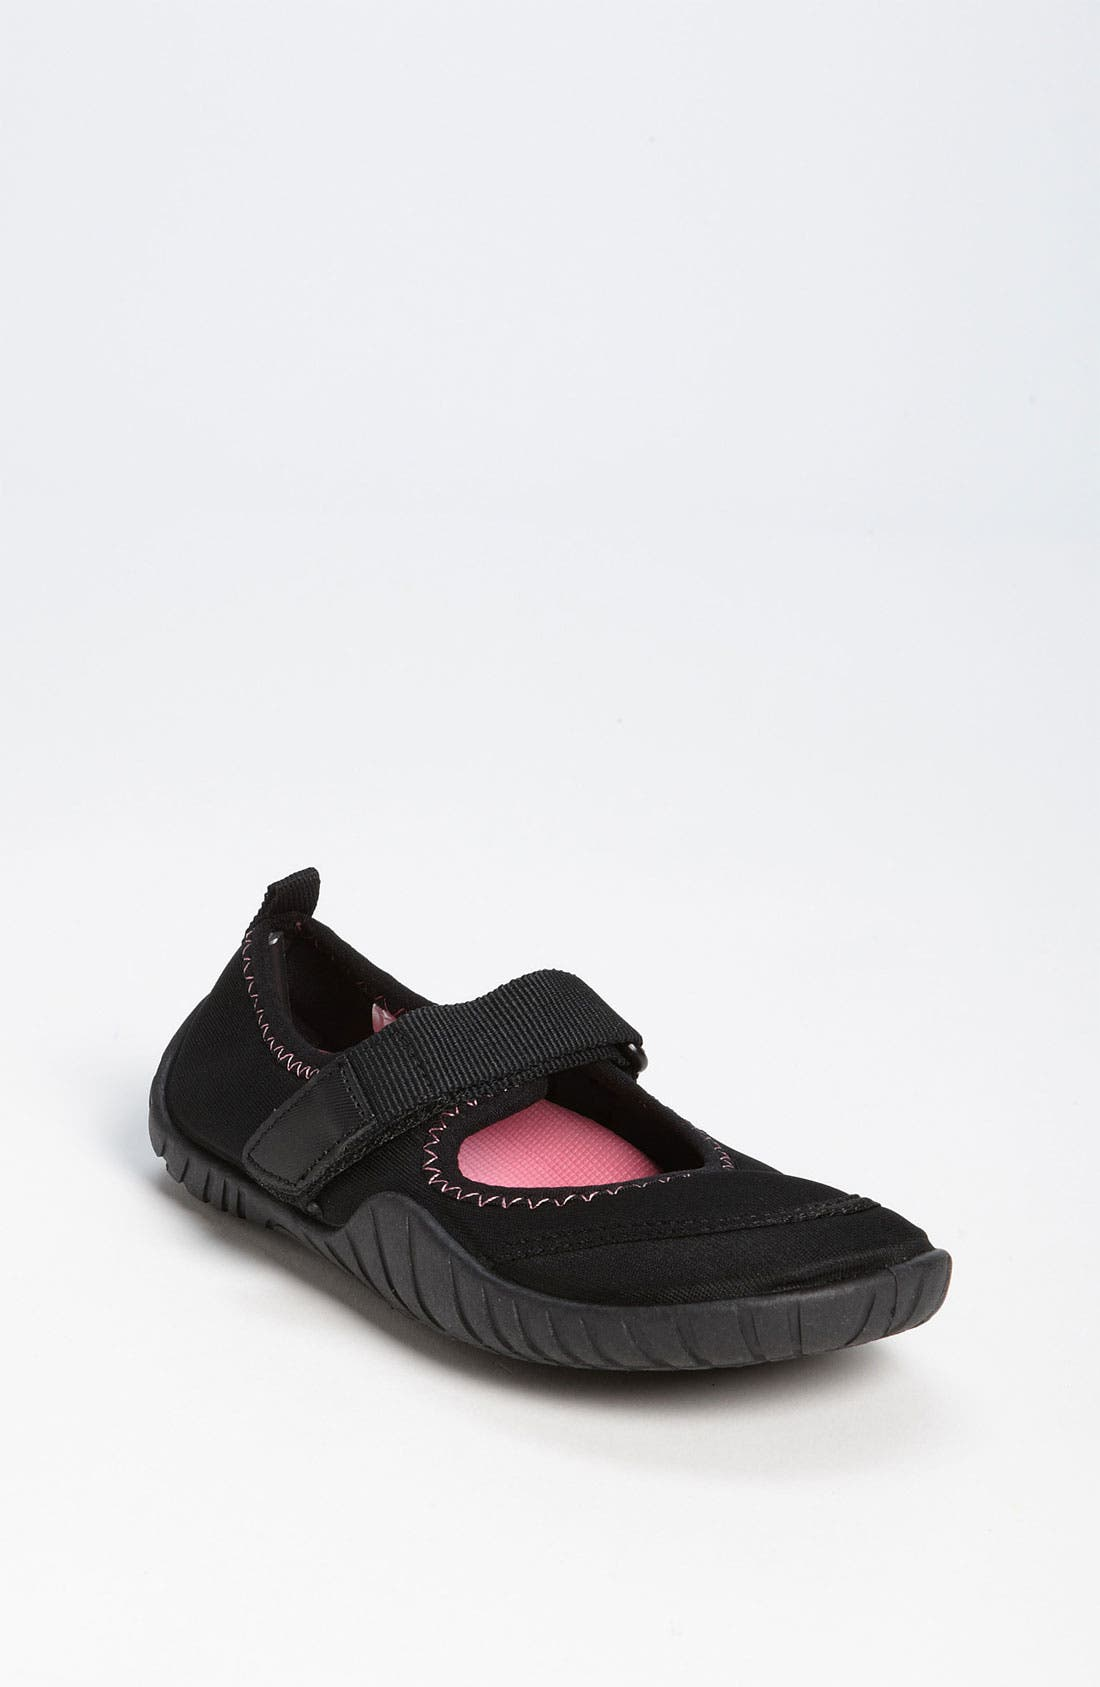 Alternate Image 1 Selected - Nordstrom 'Tide' Aqua Shoes (Walker, Toddler, Little Kid & Big Kid)